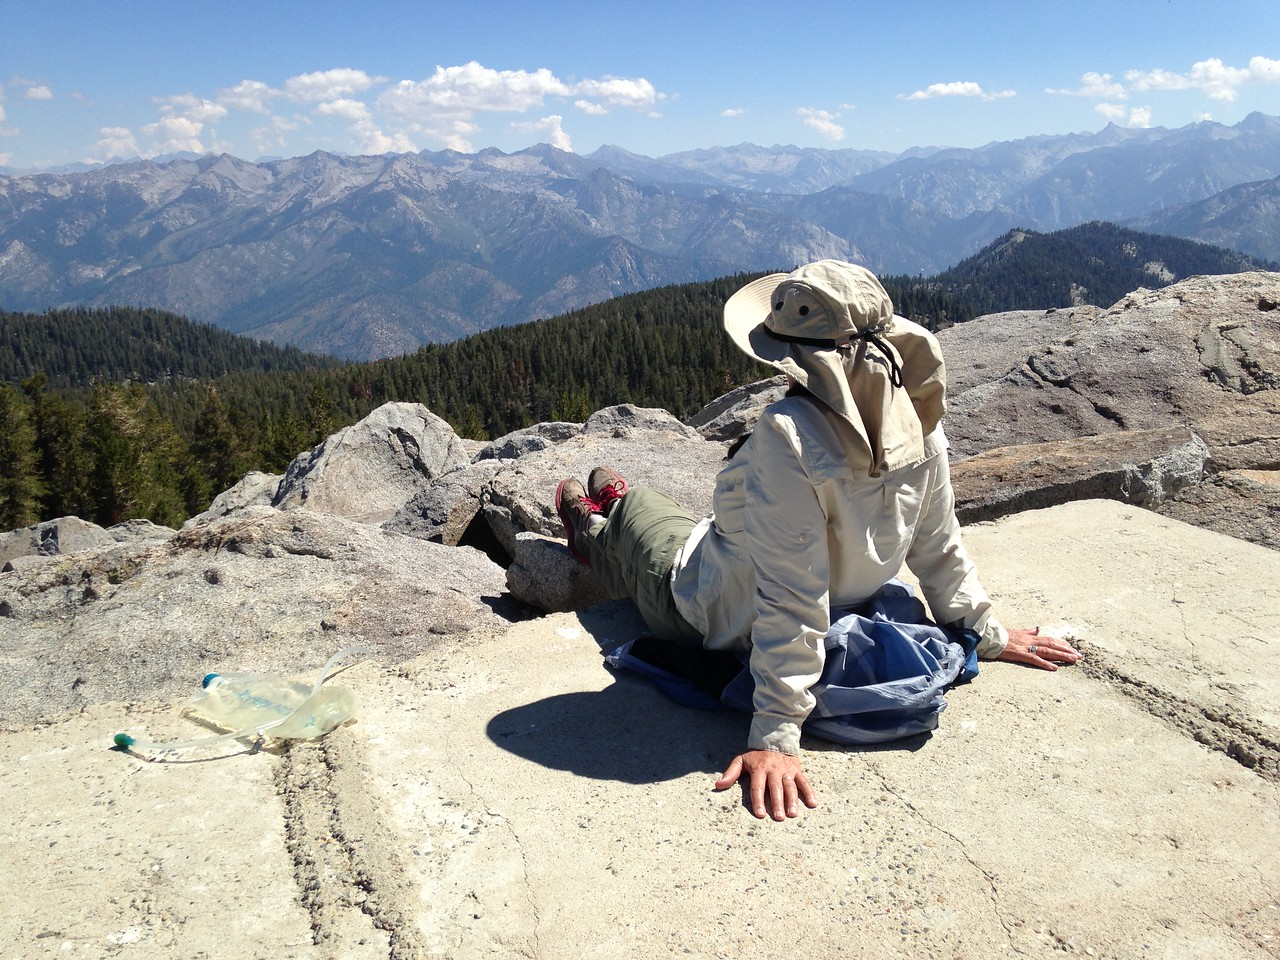 Michèle takes in the view atop Mitchell Peak, elevation 10, 365 feet.. The flat surface is concrete, almost all that remains of a fire lookout from the 1960s.